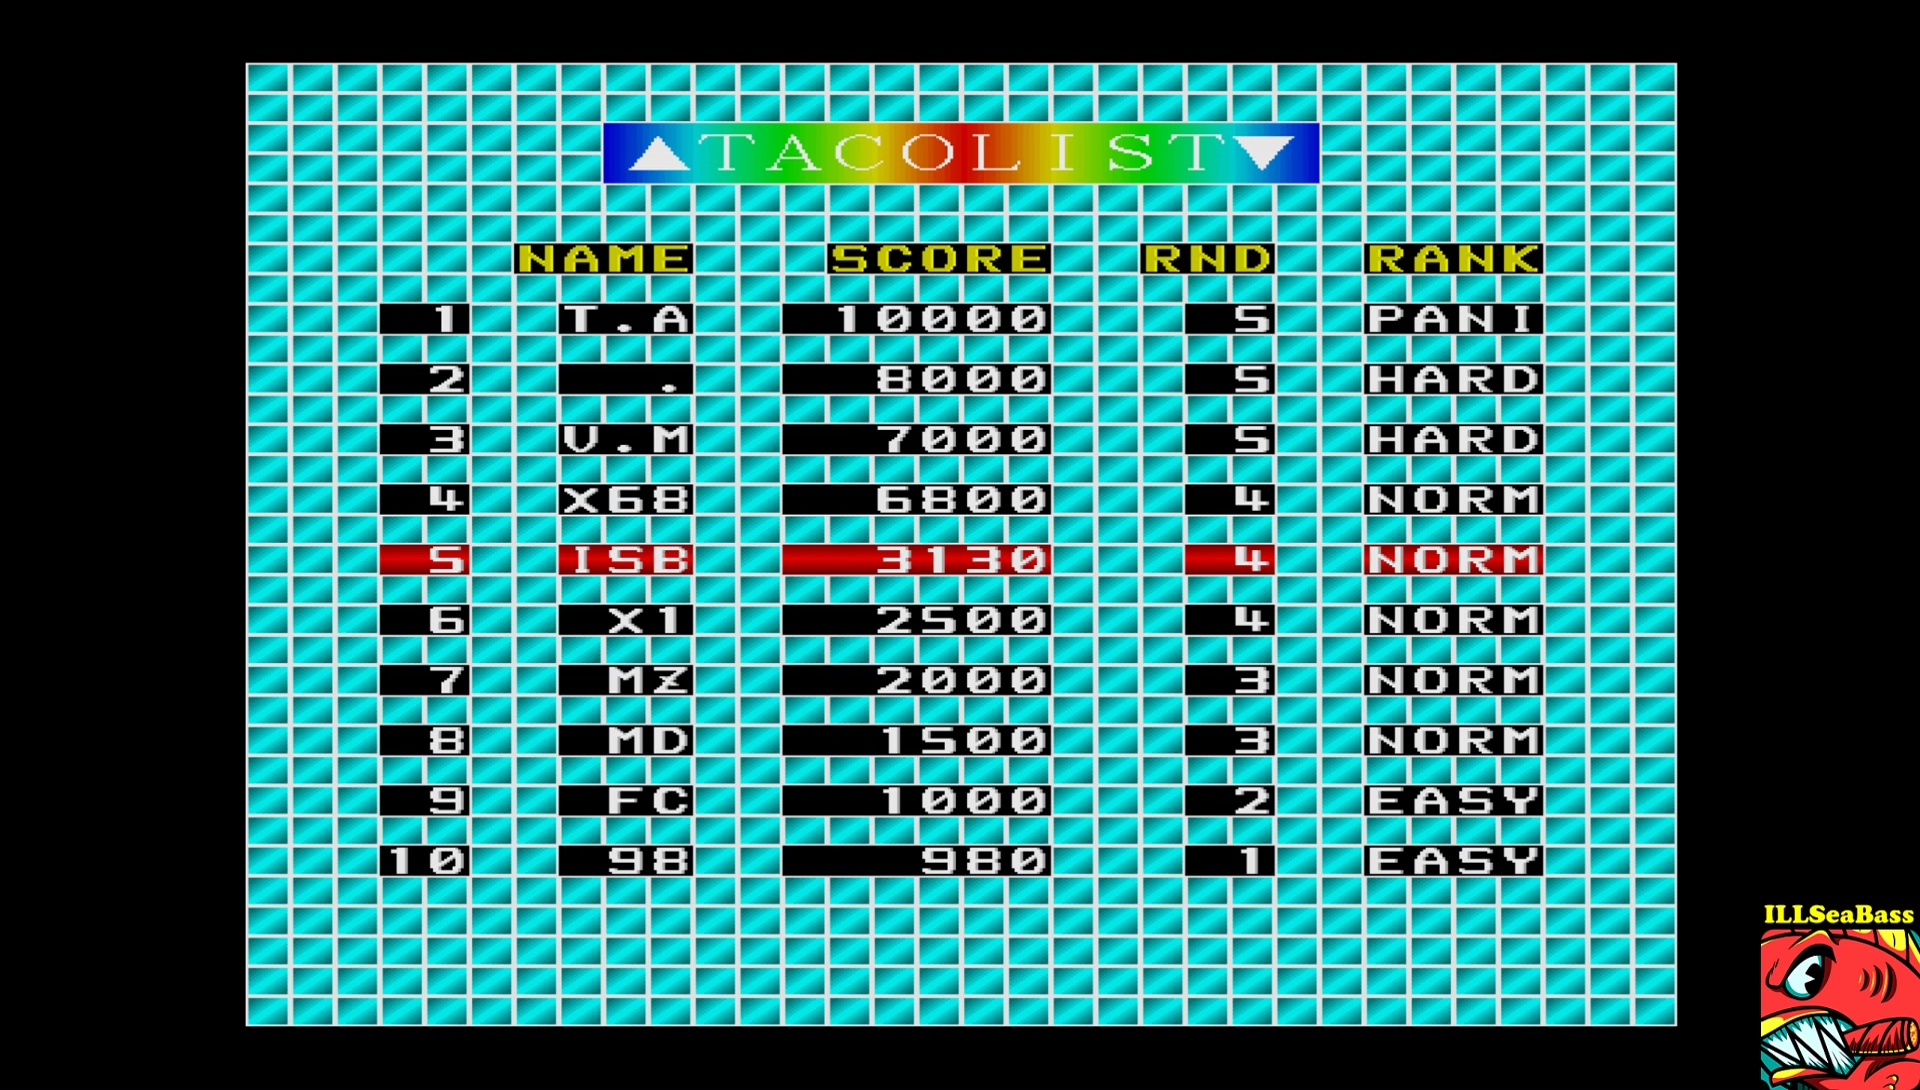 ILLSeaBass: Tacolis [Normal] (Sharp X68000 Emulated) 3,130 points on 2017-06-24 13:11:33